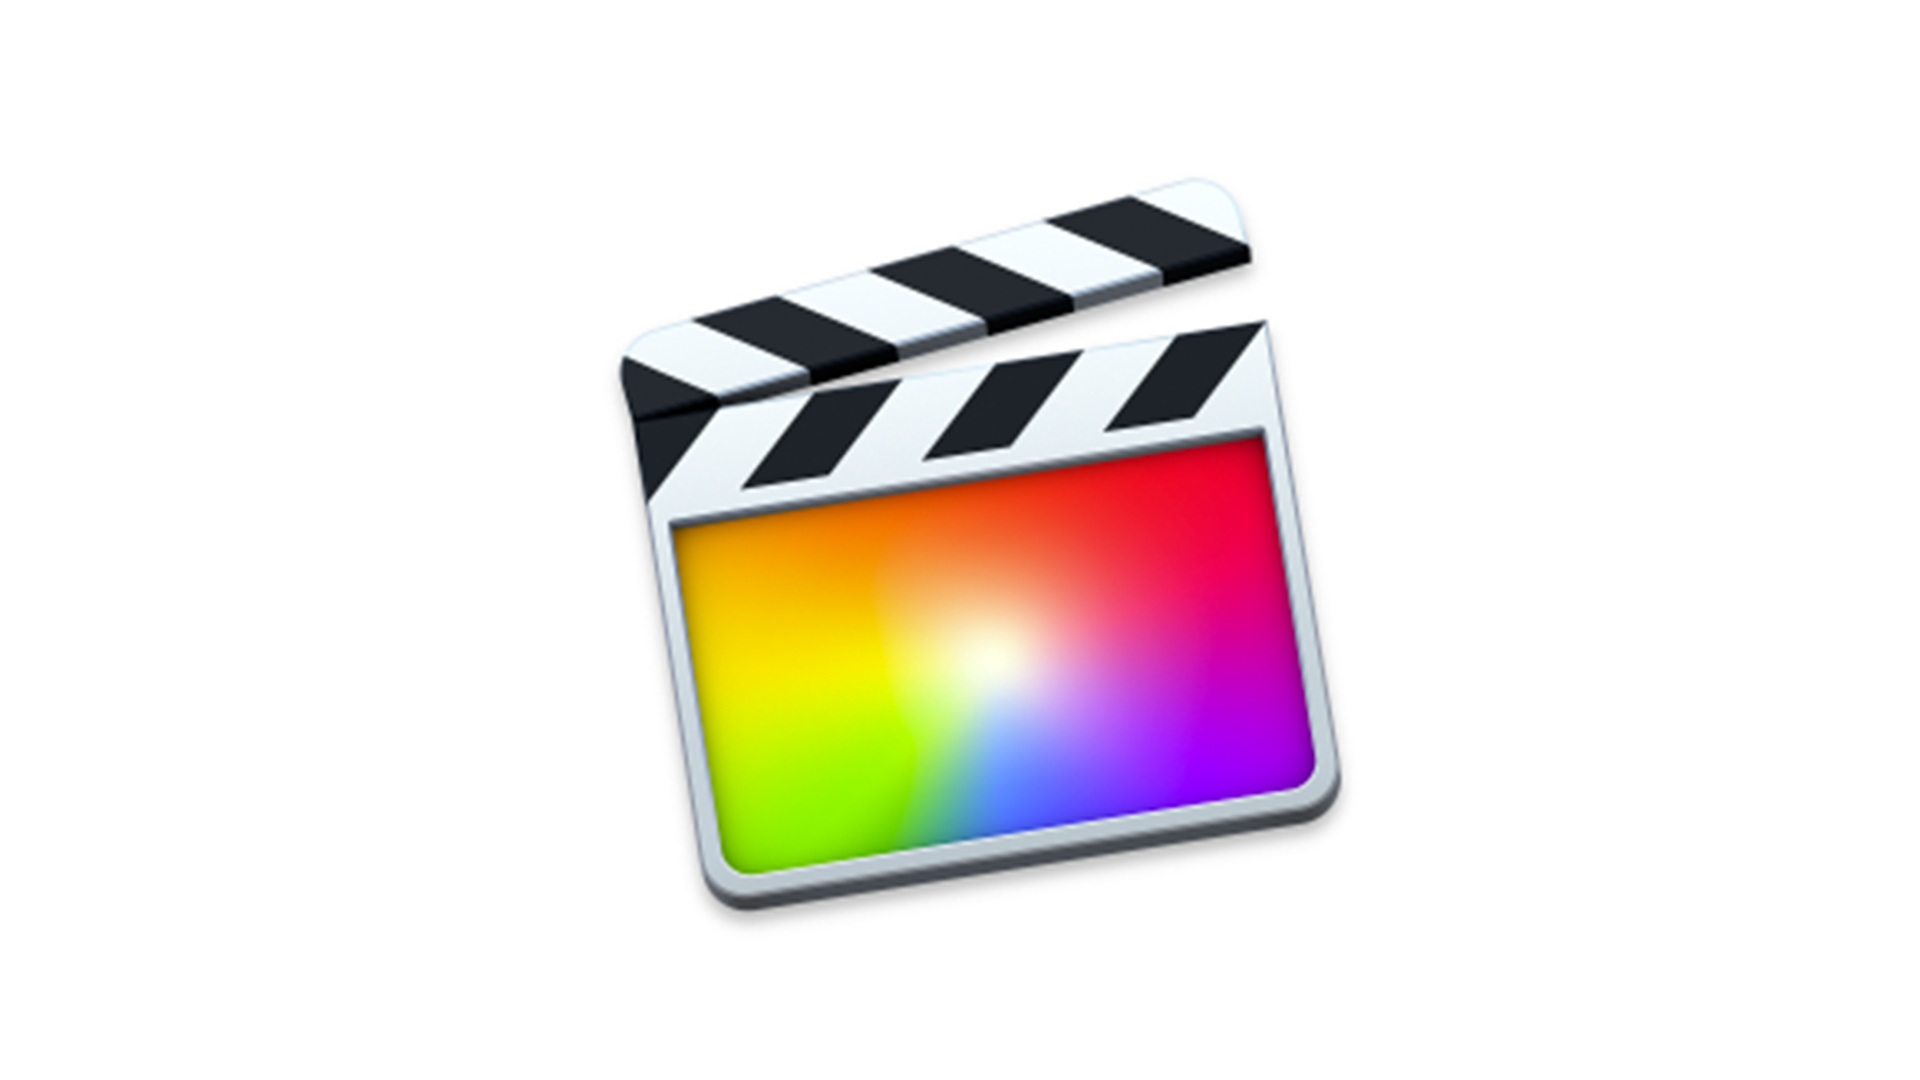 Apple pro video formats 2 0 5 update adds mxf integration to macos newsshooter - Apple icon x ...